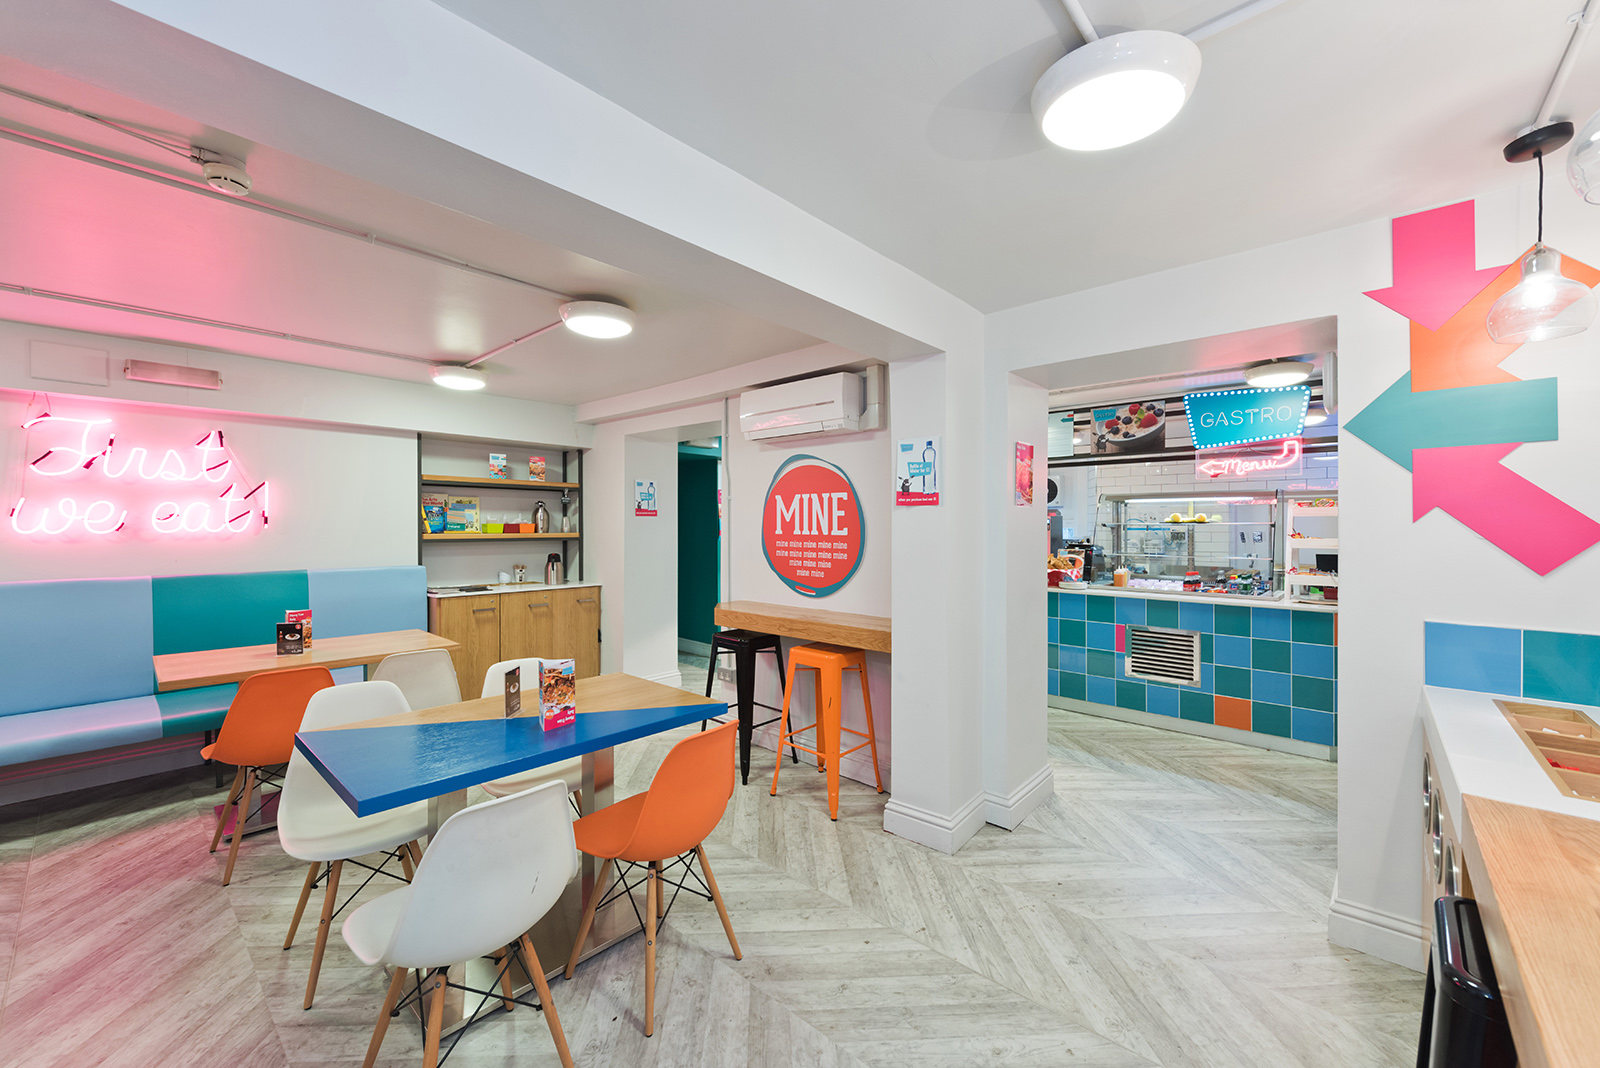 Millimetre Design-The Foodhall